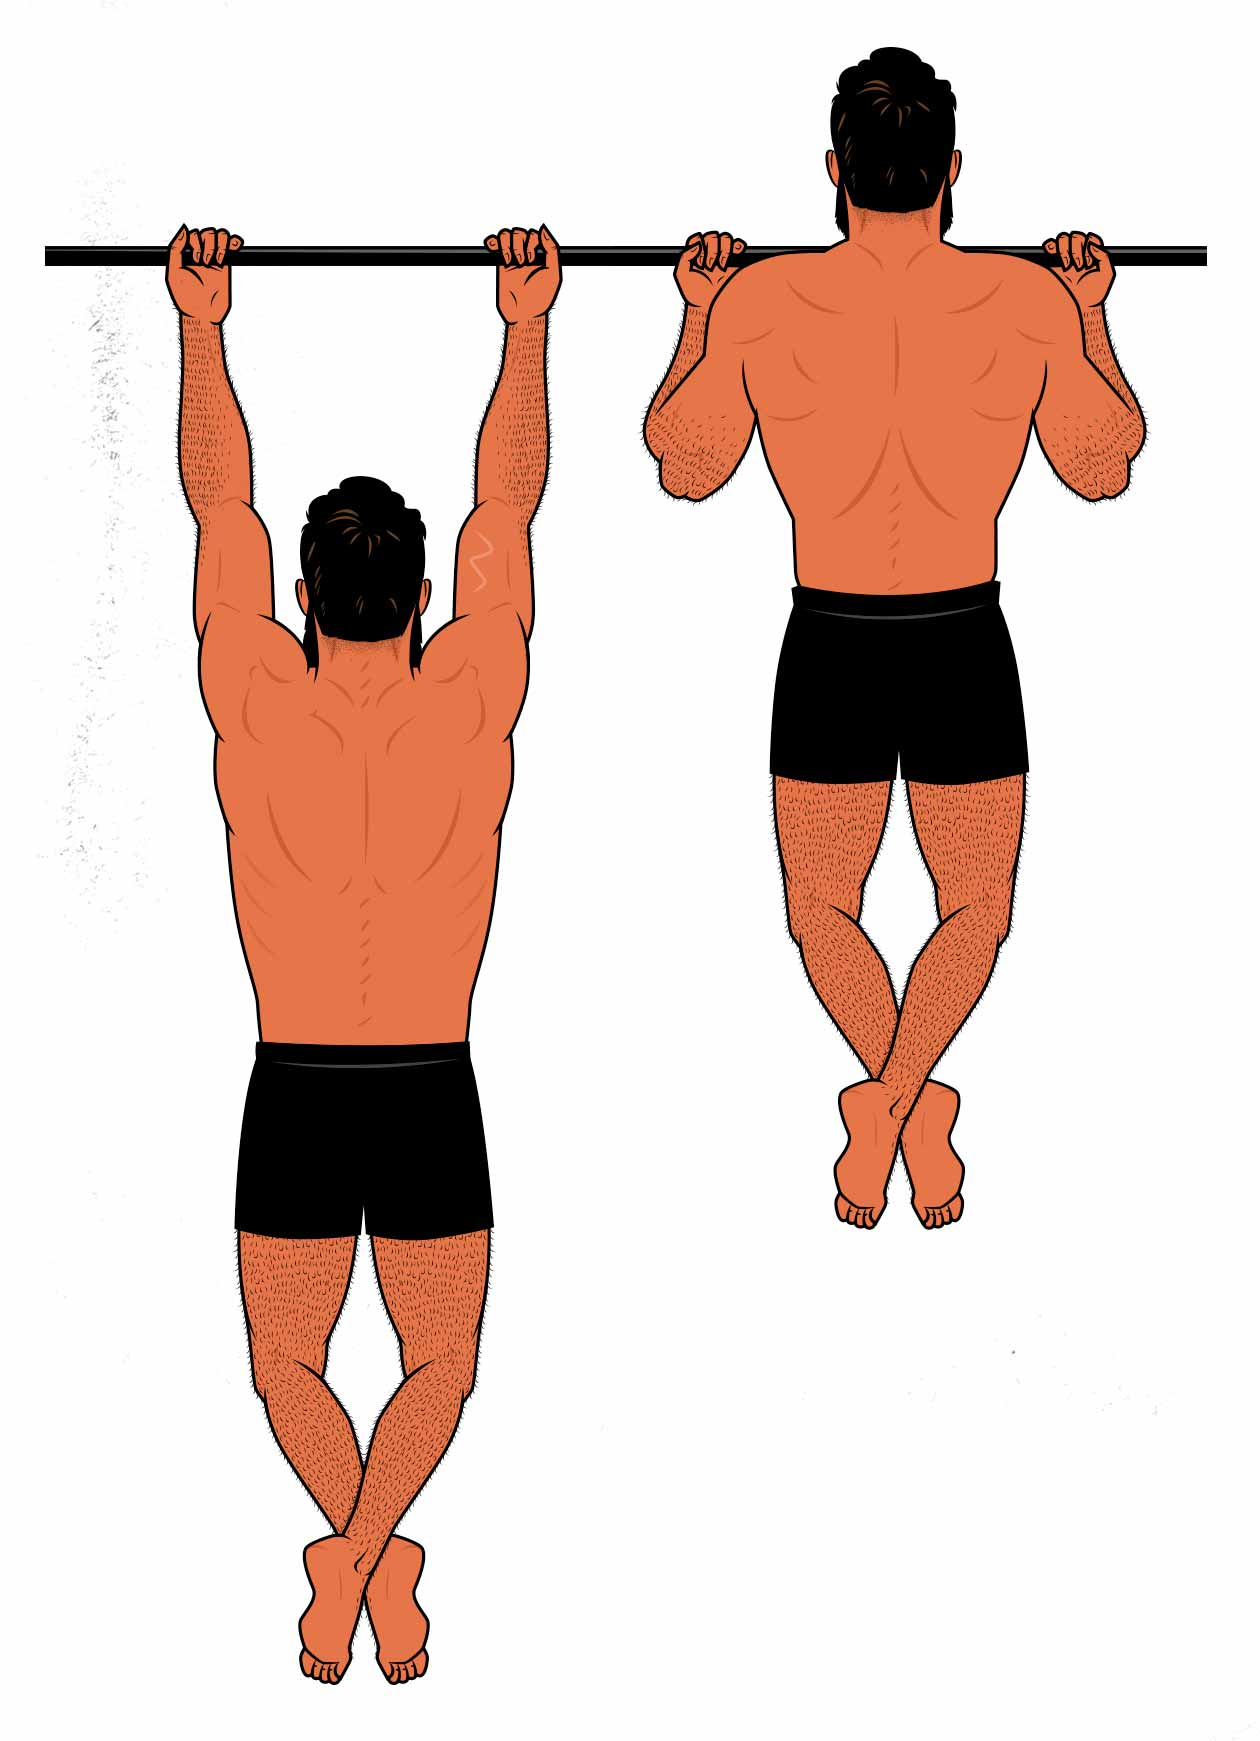 Illustration of a man doing chin-ups to work out his back.